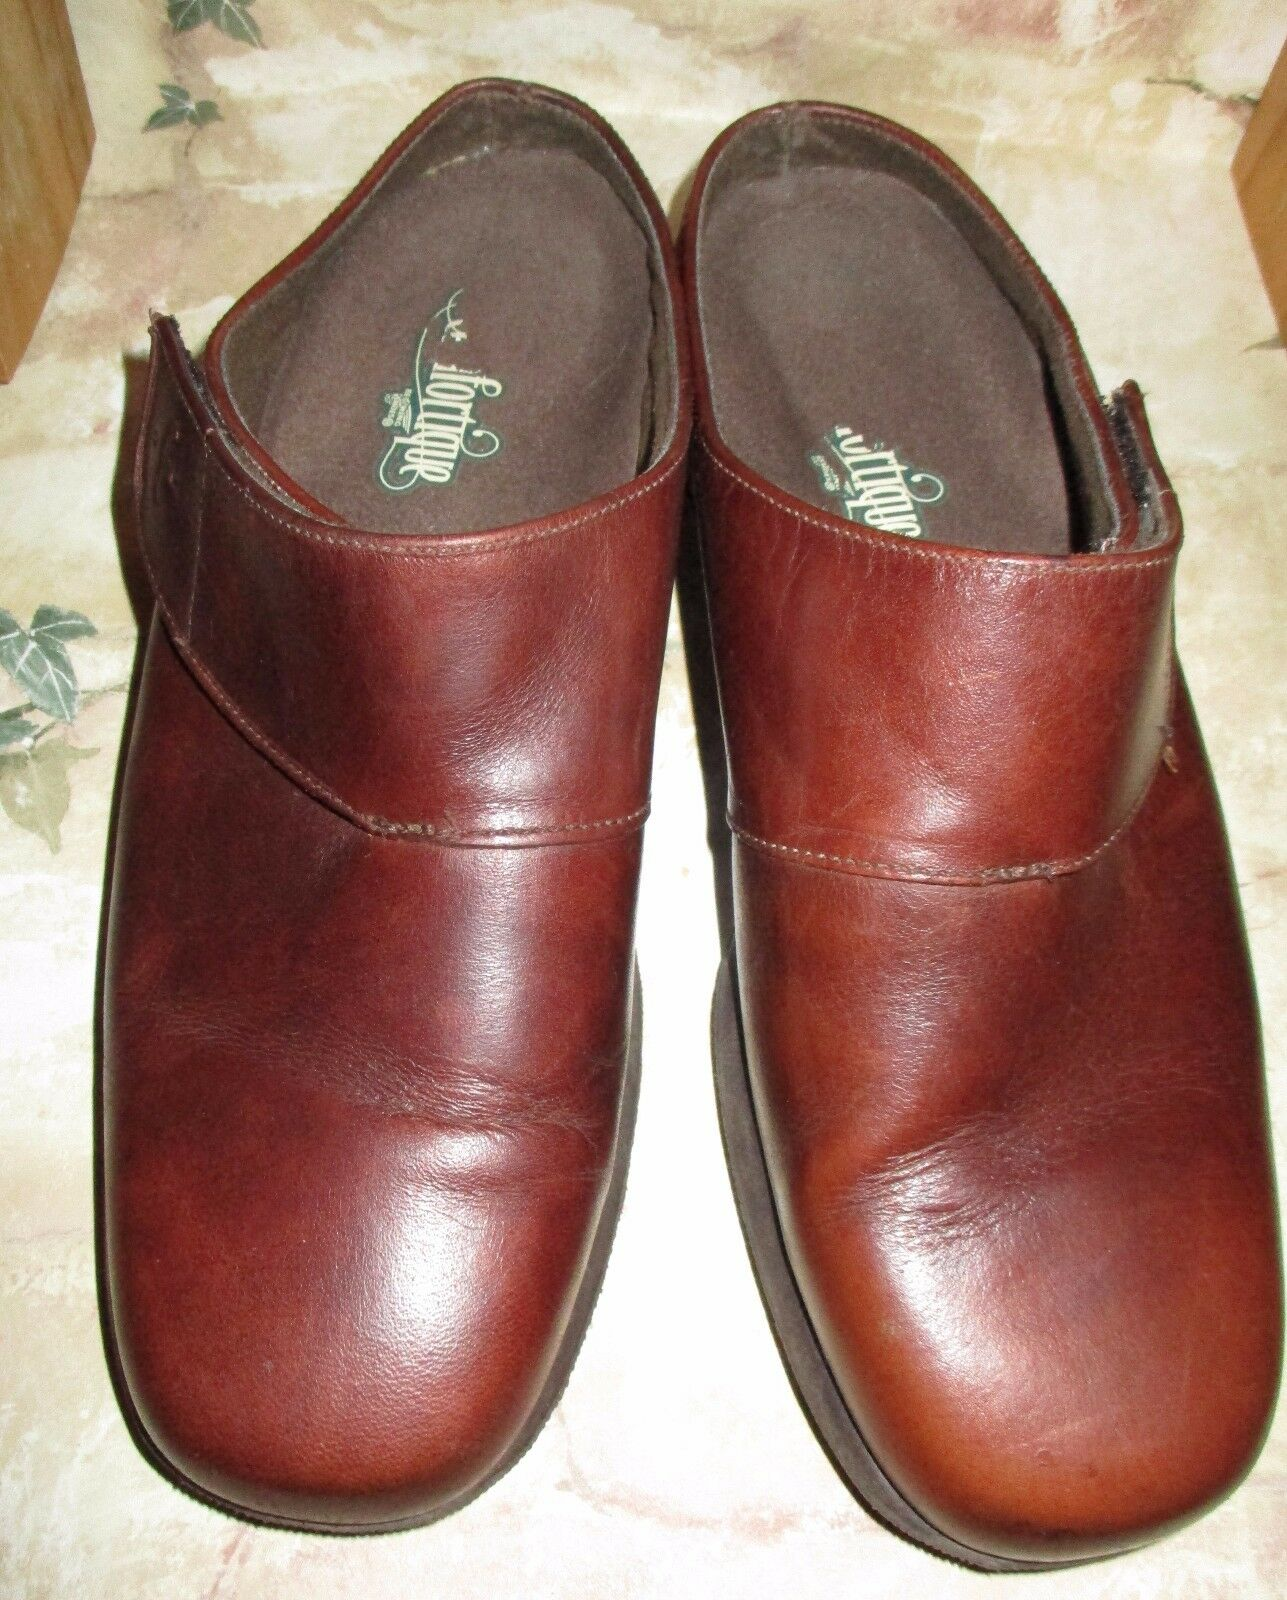 Red Wing Comfortique Women's size 8M Brown shoes Super Comfy